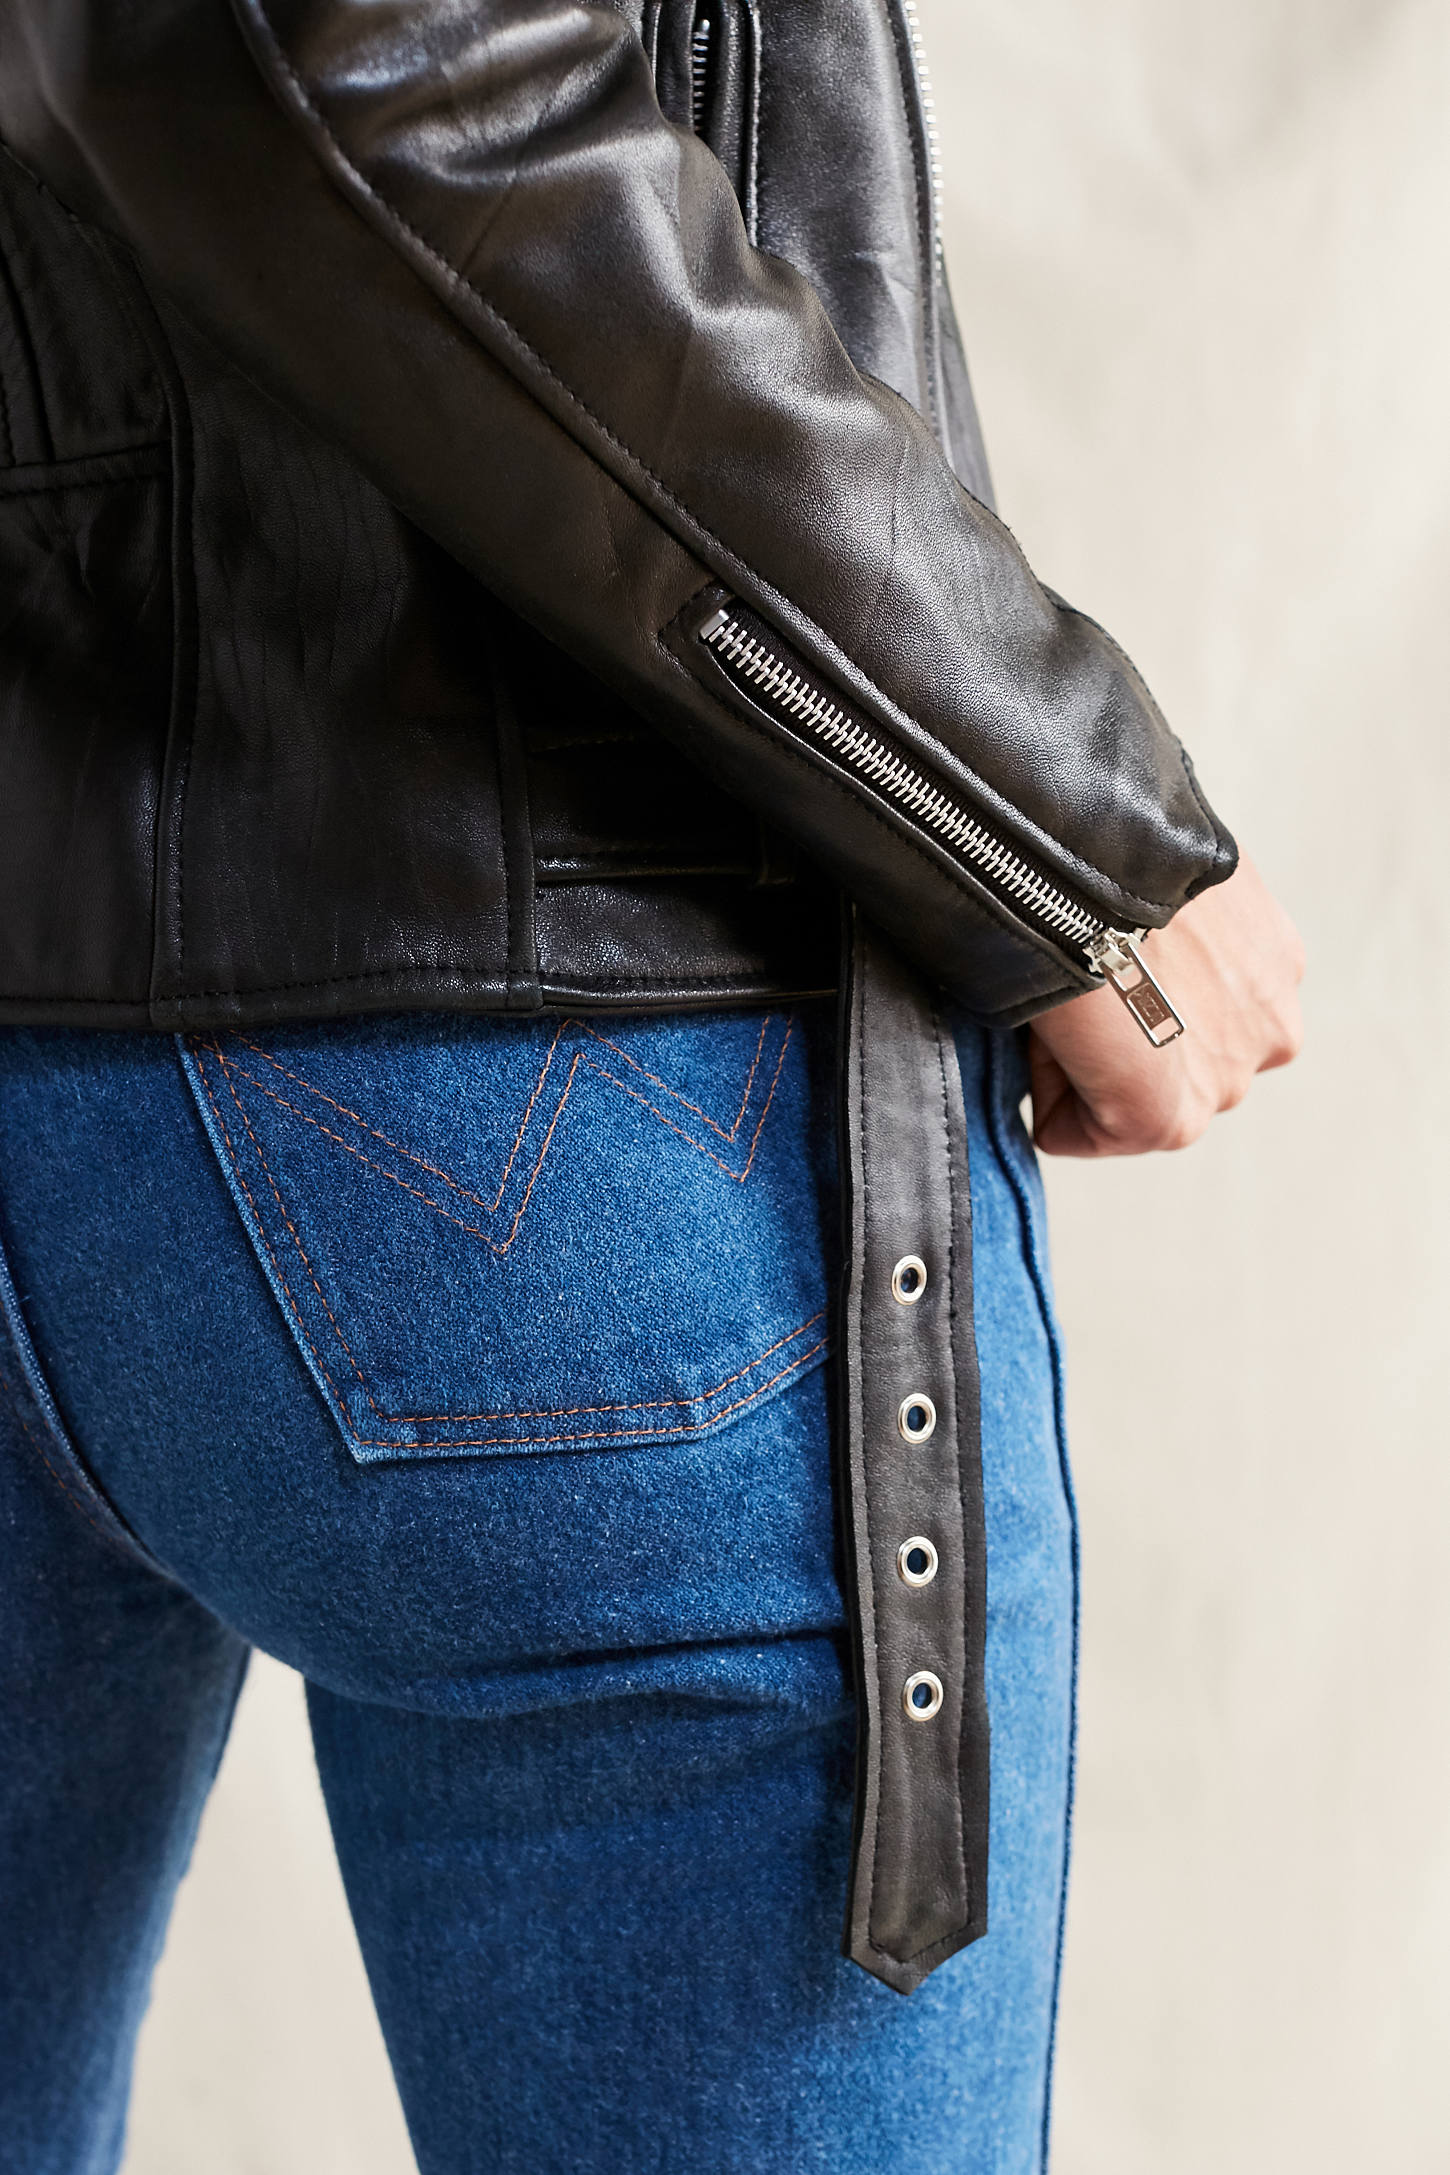 Leather jacket urban outfitters - Slide View 6 Pelechecoco Leather Moto Jacket